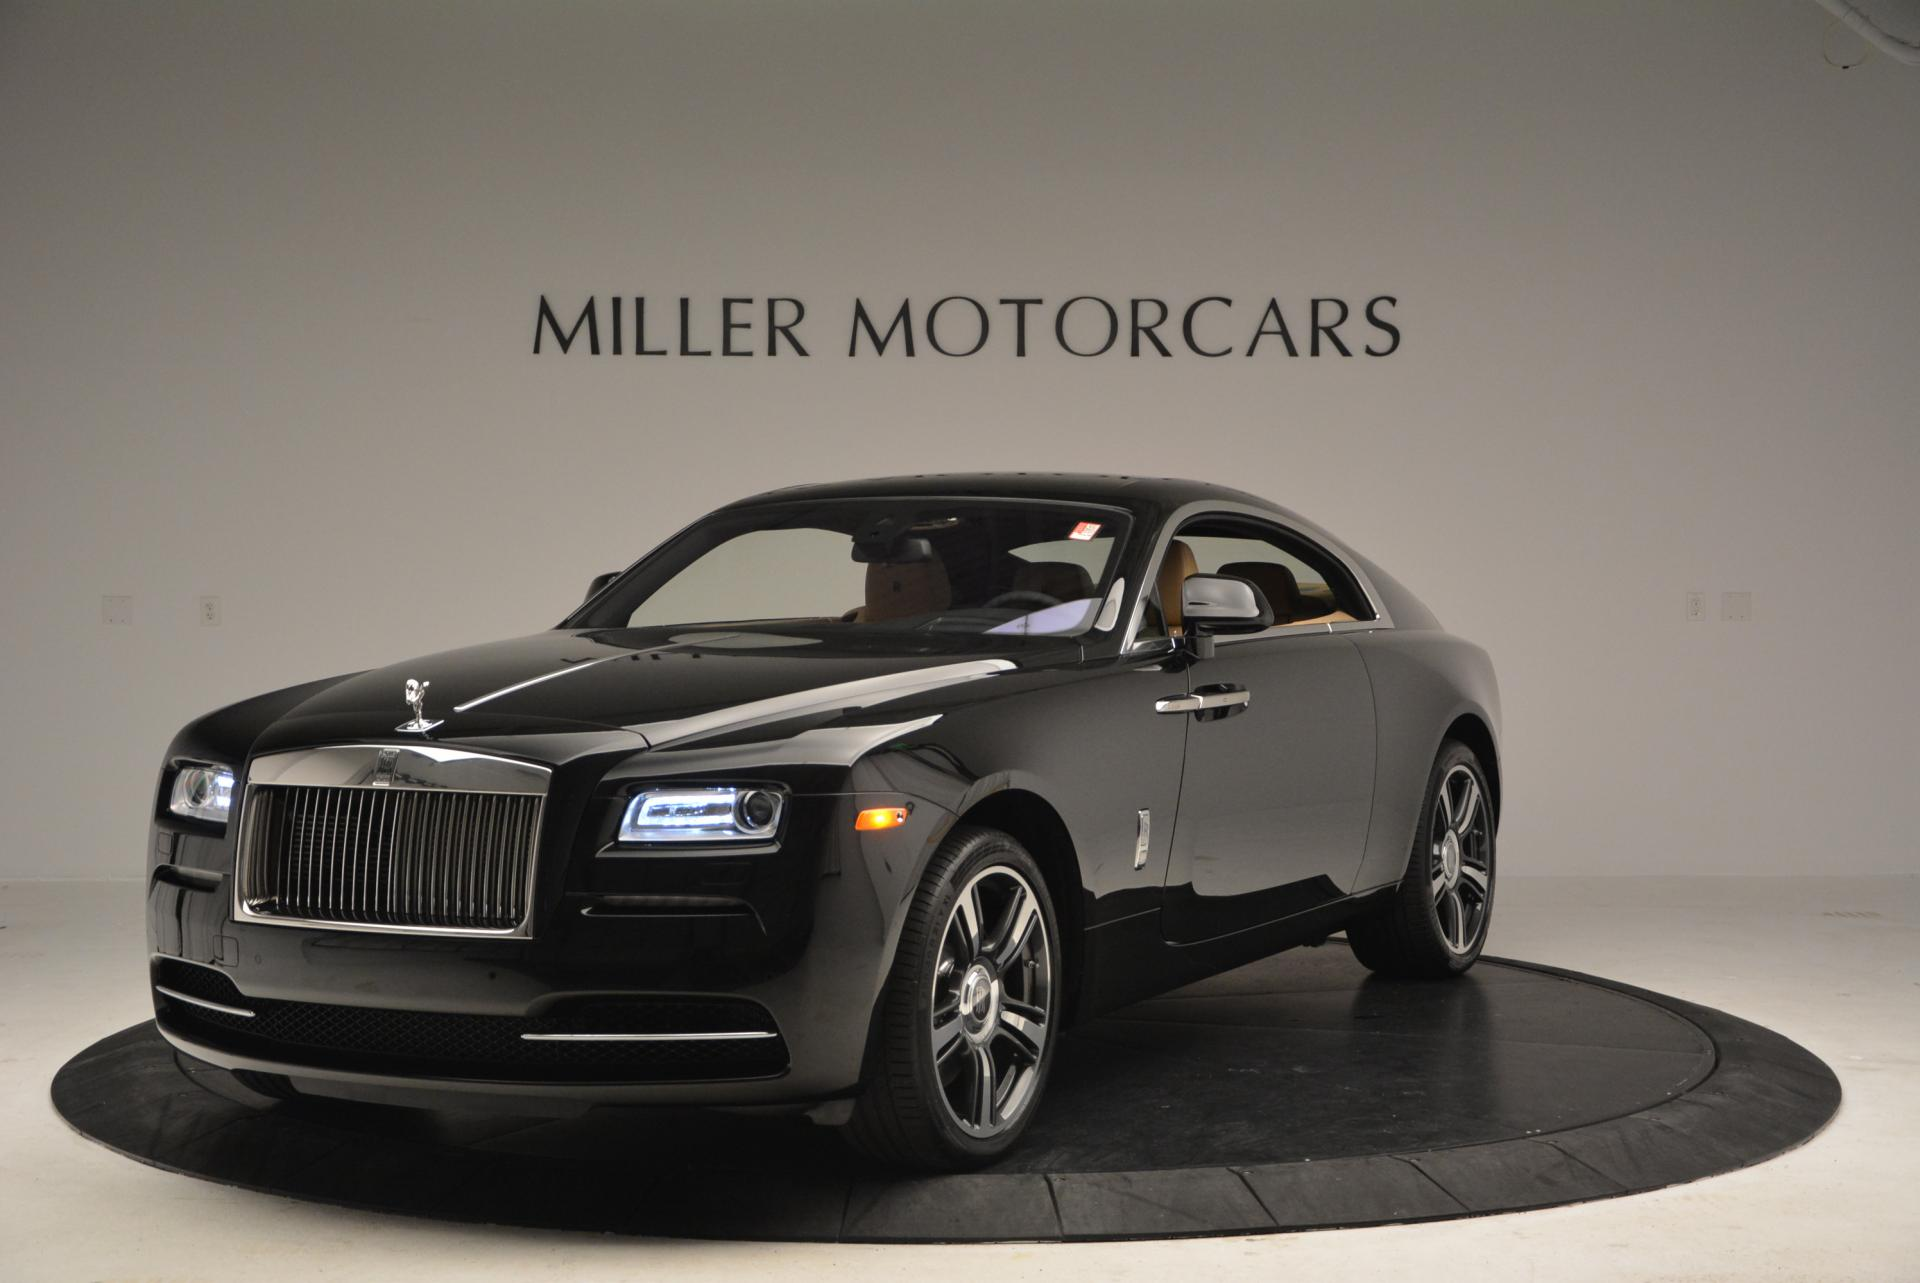 New 2016 Rolls-Royce Wraith  For Sale In Greenwich, CT 218_main